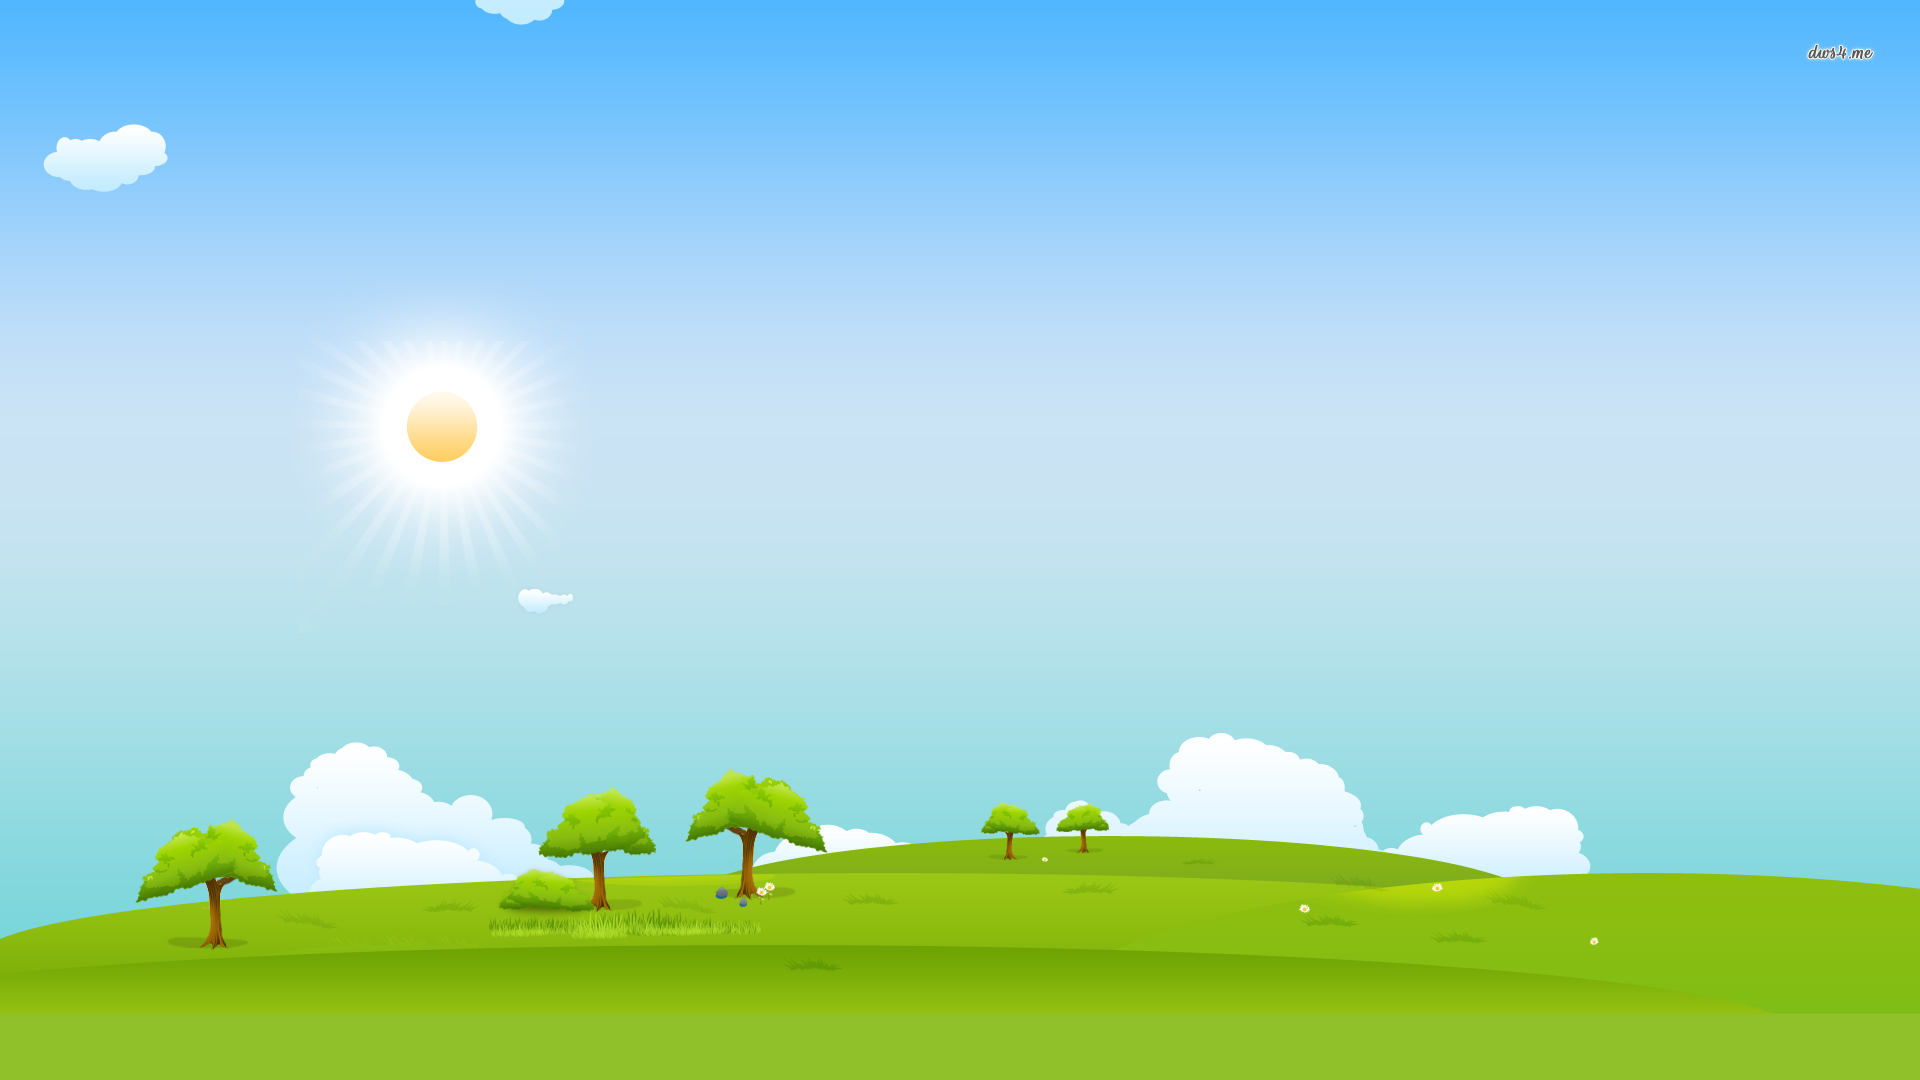 Grass And Sky Vector Wallpapers Widescreen On Wallpaper 1080p Hd Landscape Clipart Blur Photo Background Kids Background